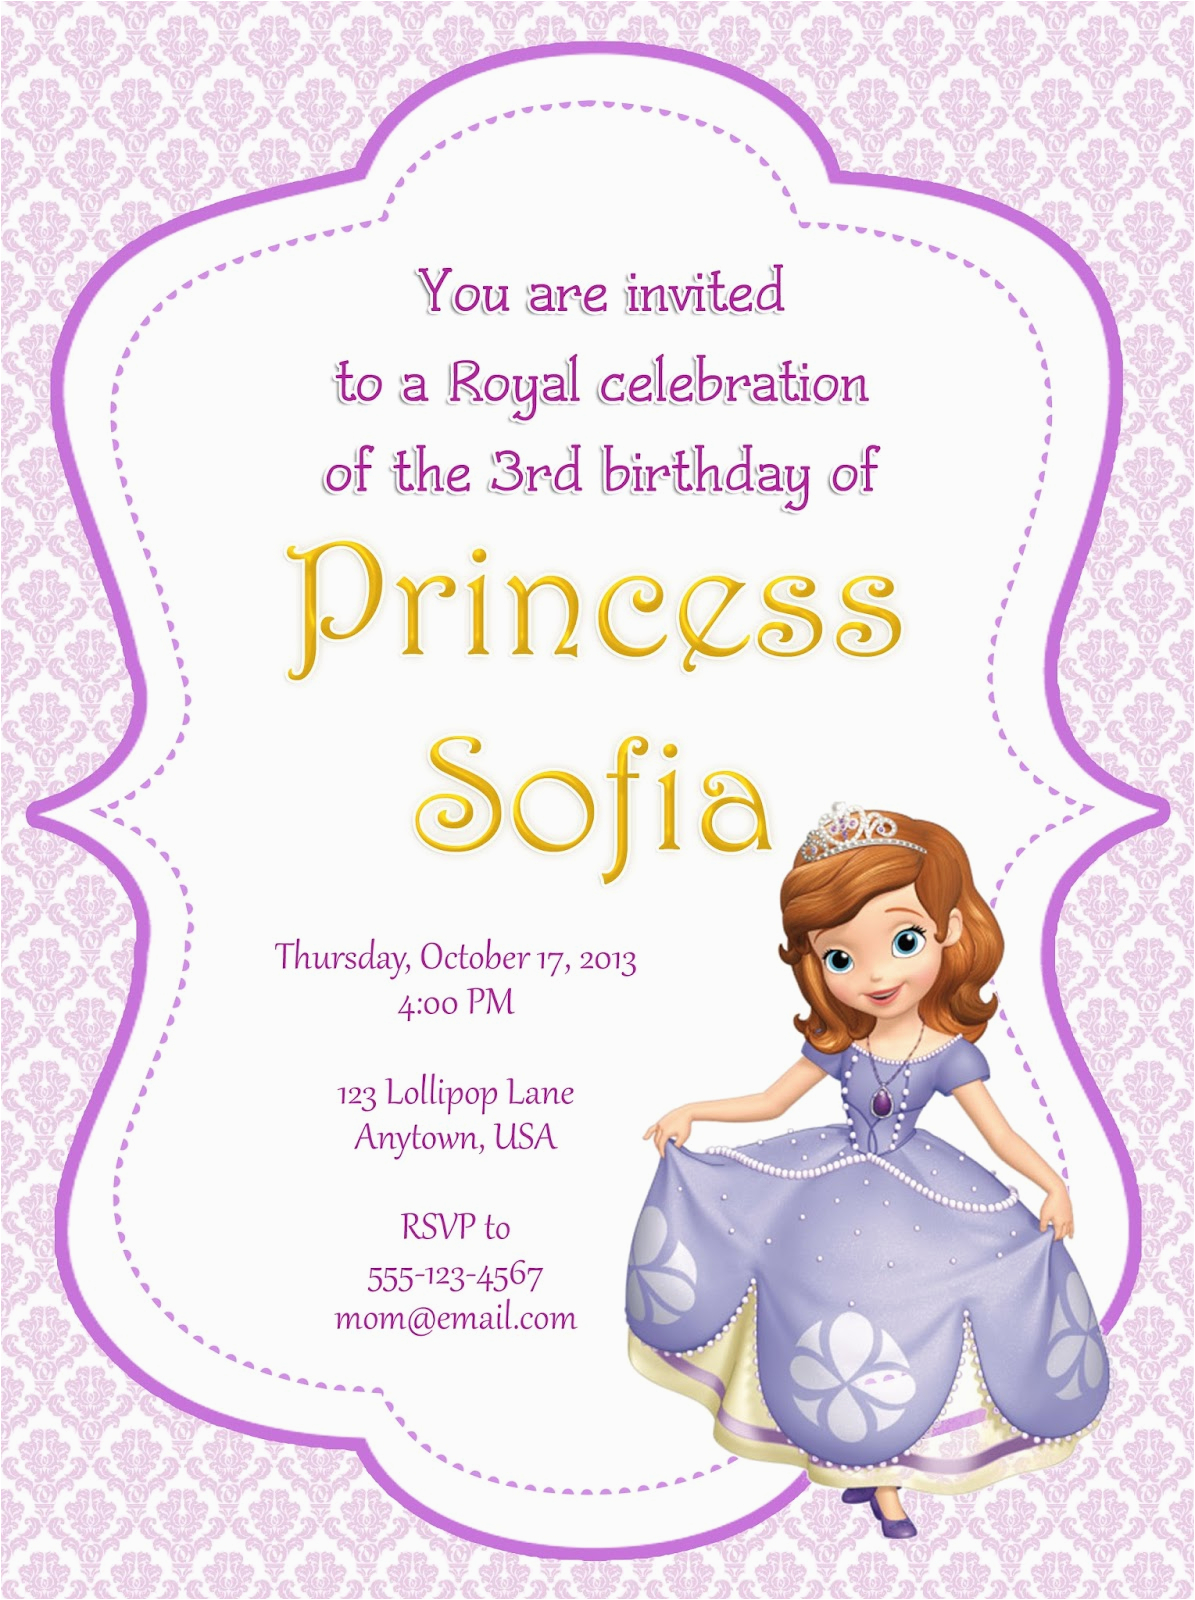 sofia the first party invitations for party invitation cards invitation card design in your invitation accompanied by attractive ornaments 1